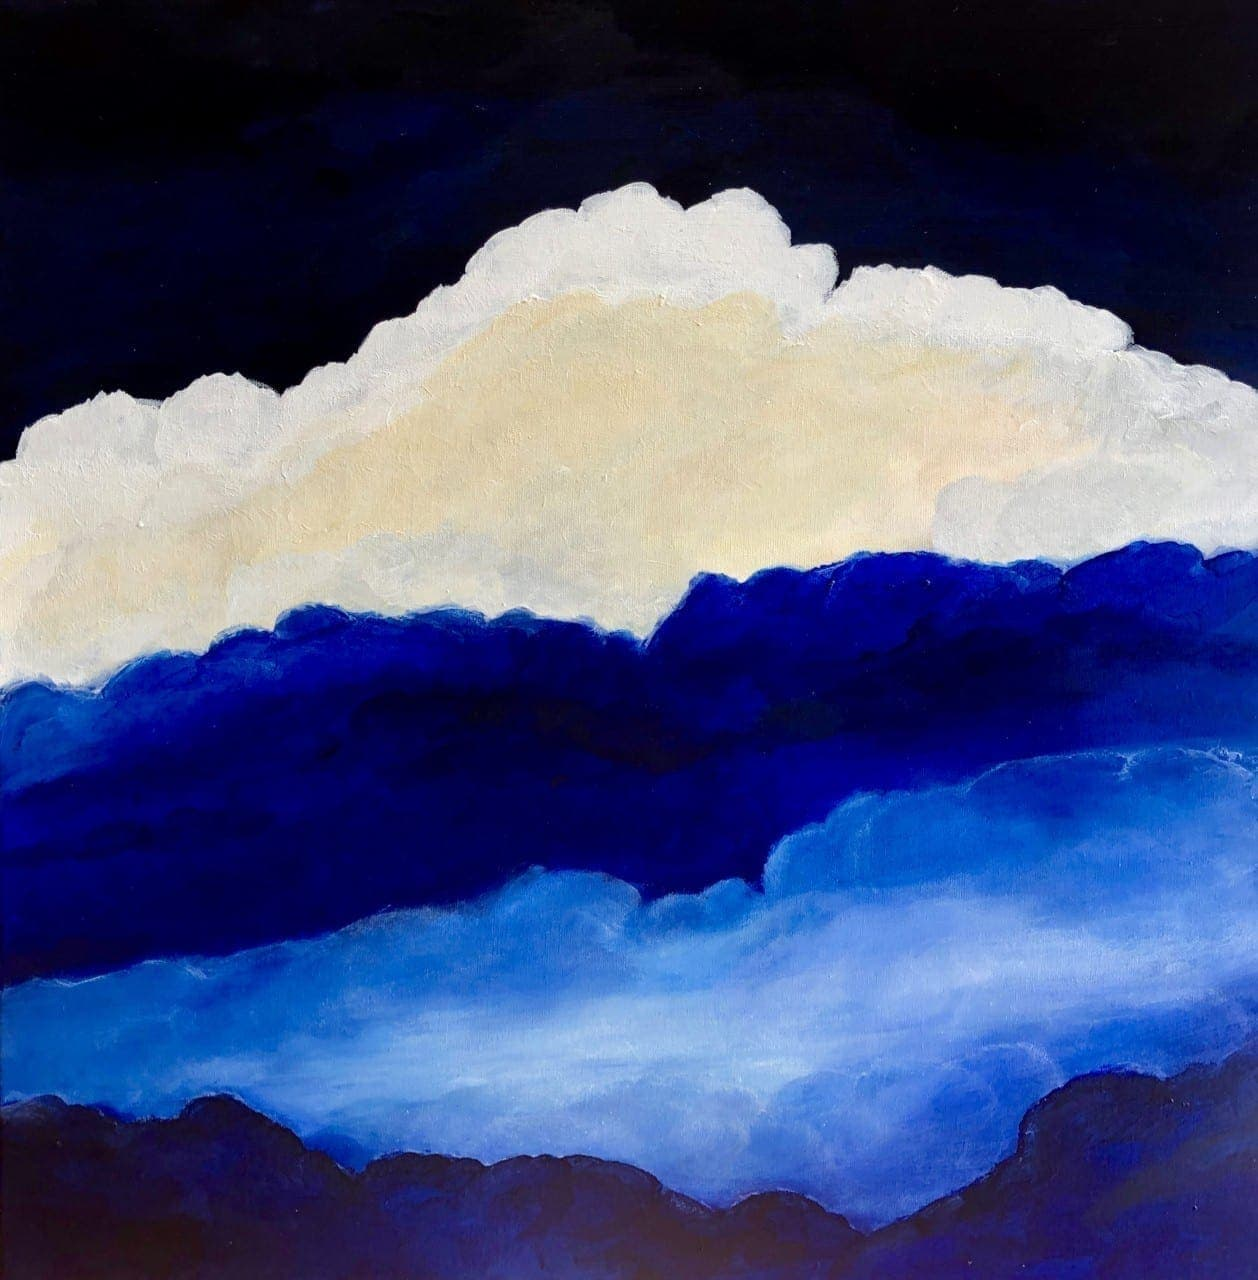 """Atmosphere"" oil on canvas painting of clouds measuring 60 x 60 cm or 23.5 x 23.5 inches. With blue and white clouds and a deep indigo blue sky."